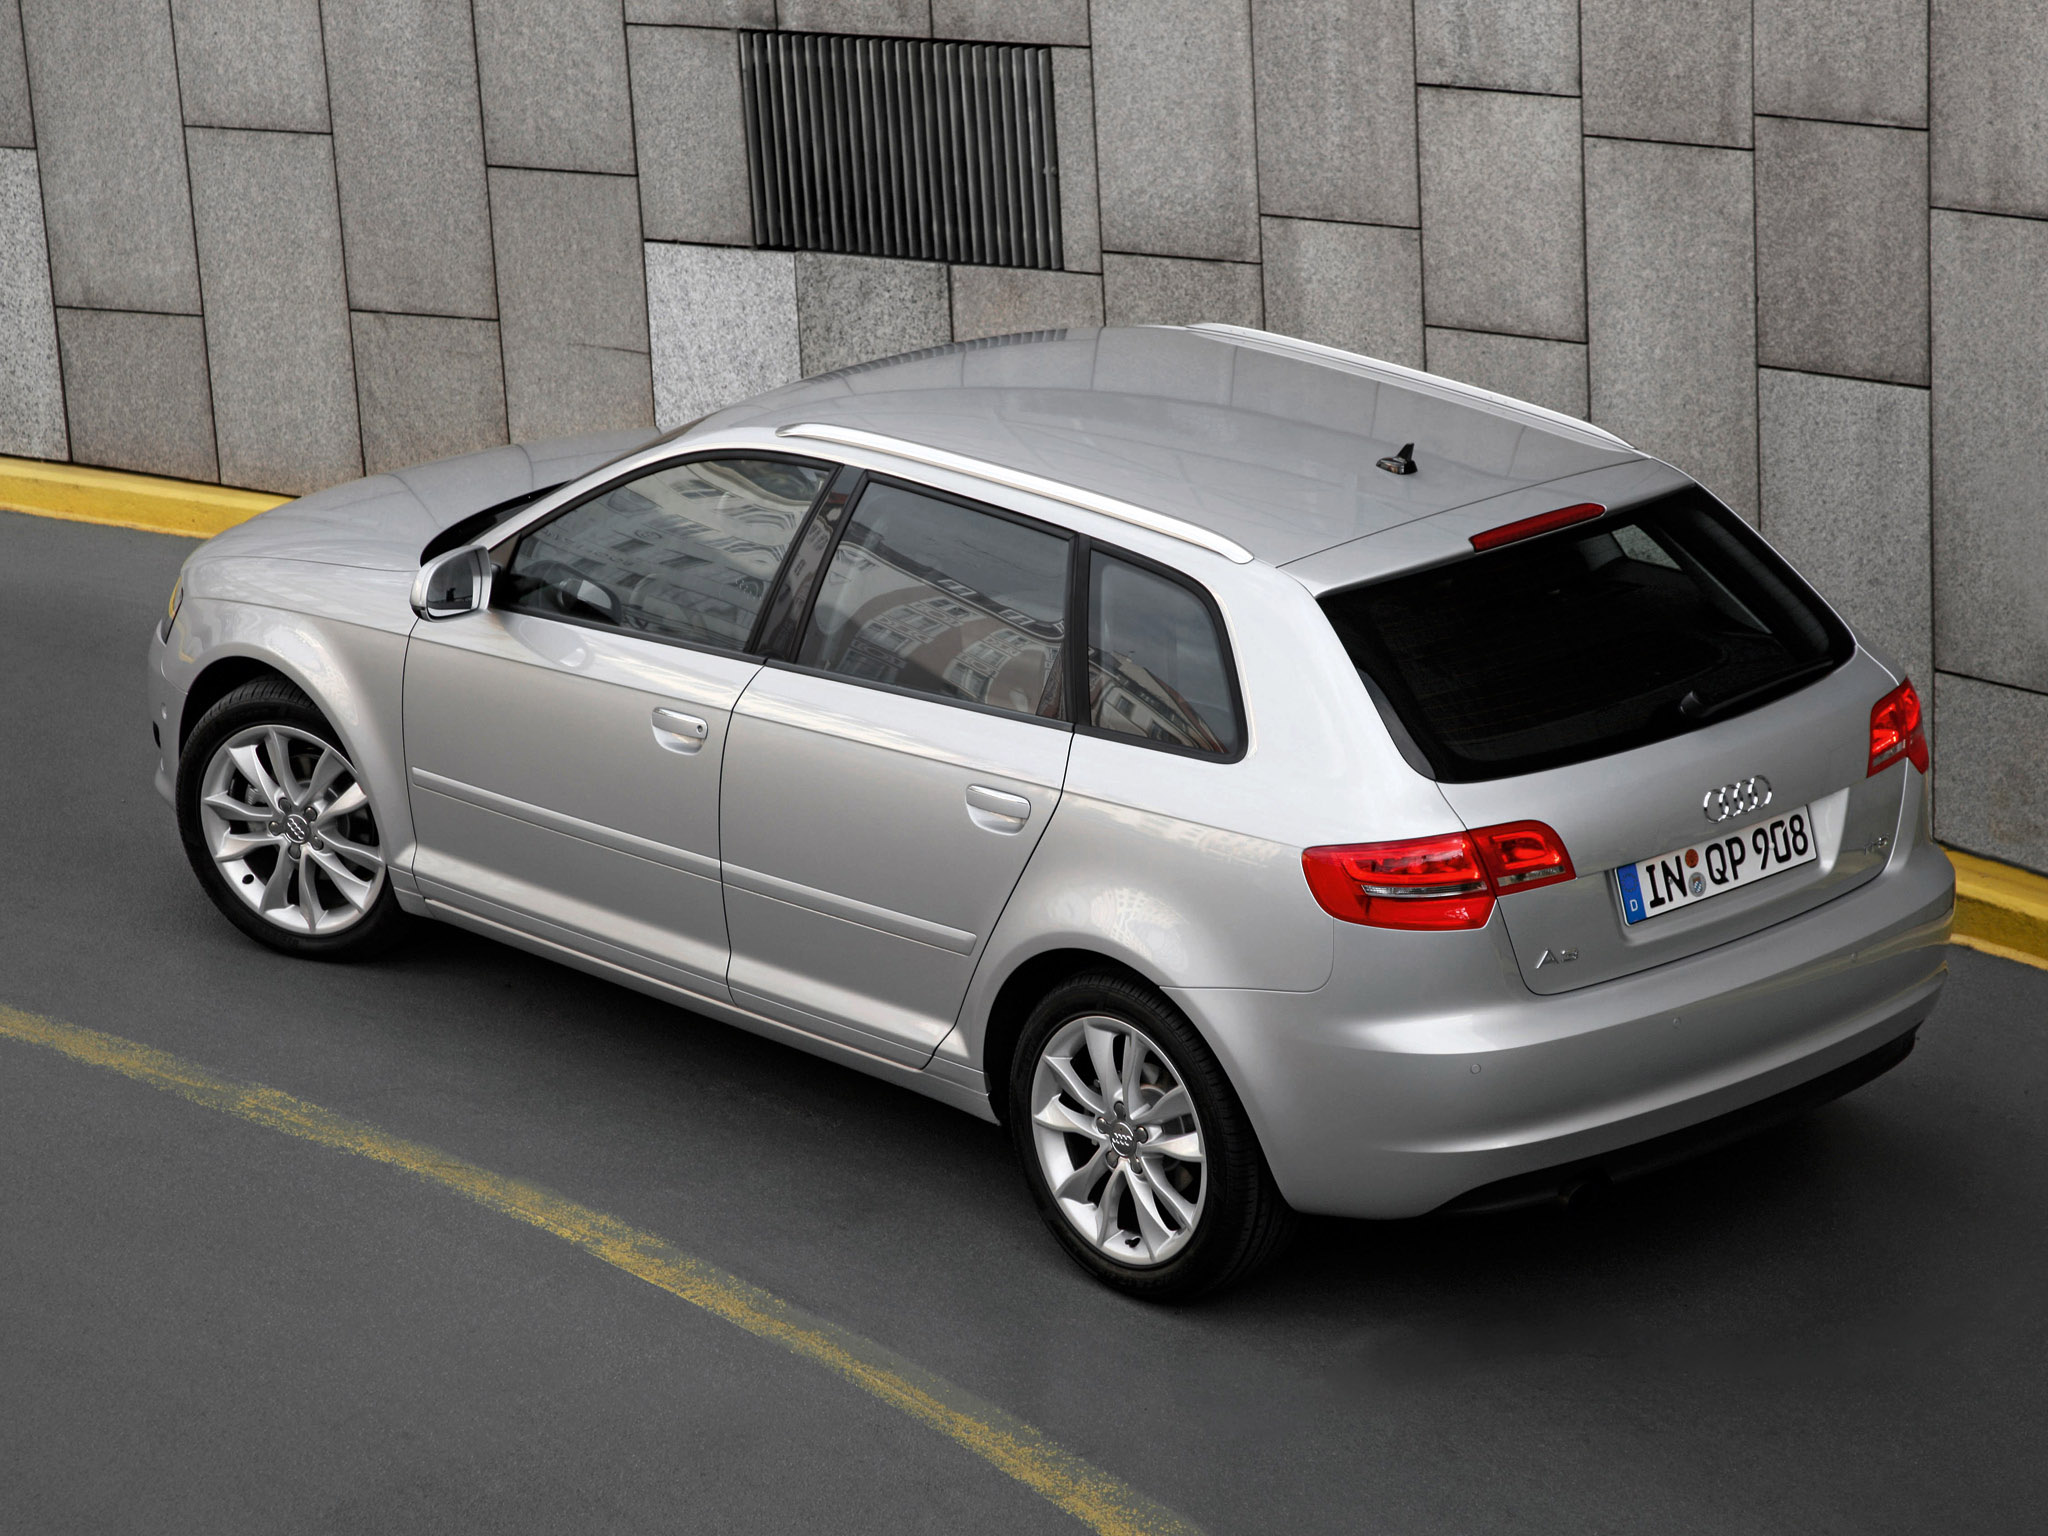 audi a3 sportback 8pa 2010 audi a3 sportback 8pa 2010 photo 12 car in pictures car photo gallery. Black Bedroom Furniture Sets. Home Design Ideas